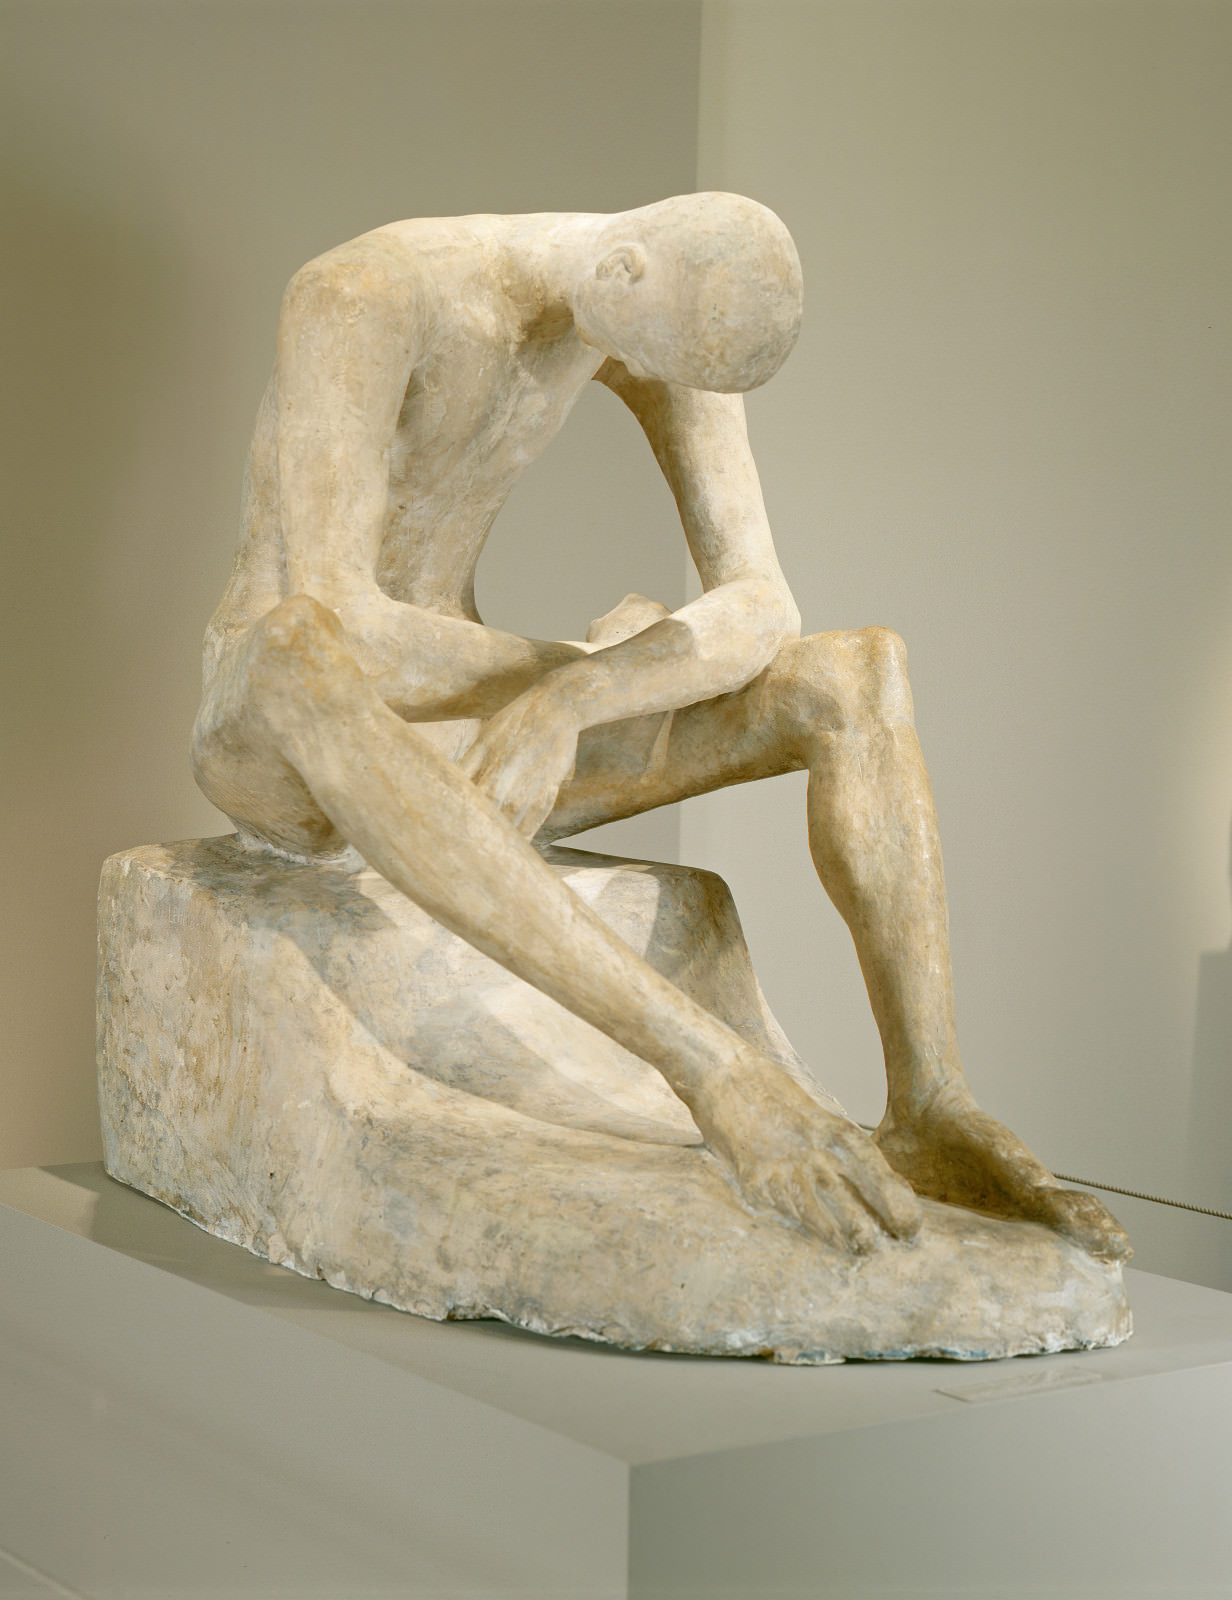 Fig. 2 – Jovem Sentado, Wilhelm Lehmbruck, 1917, composto de gesso colorido, 103.2 x 76.2 x 115.5 cm. National Gallery of Art, Washington. Fundo Andrew W. Mellon.